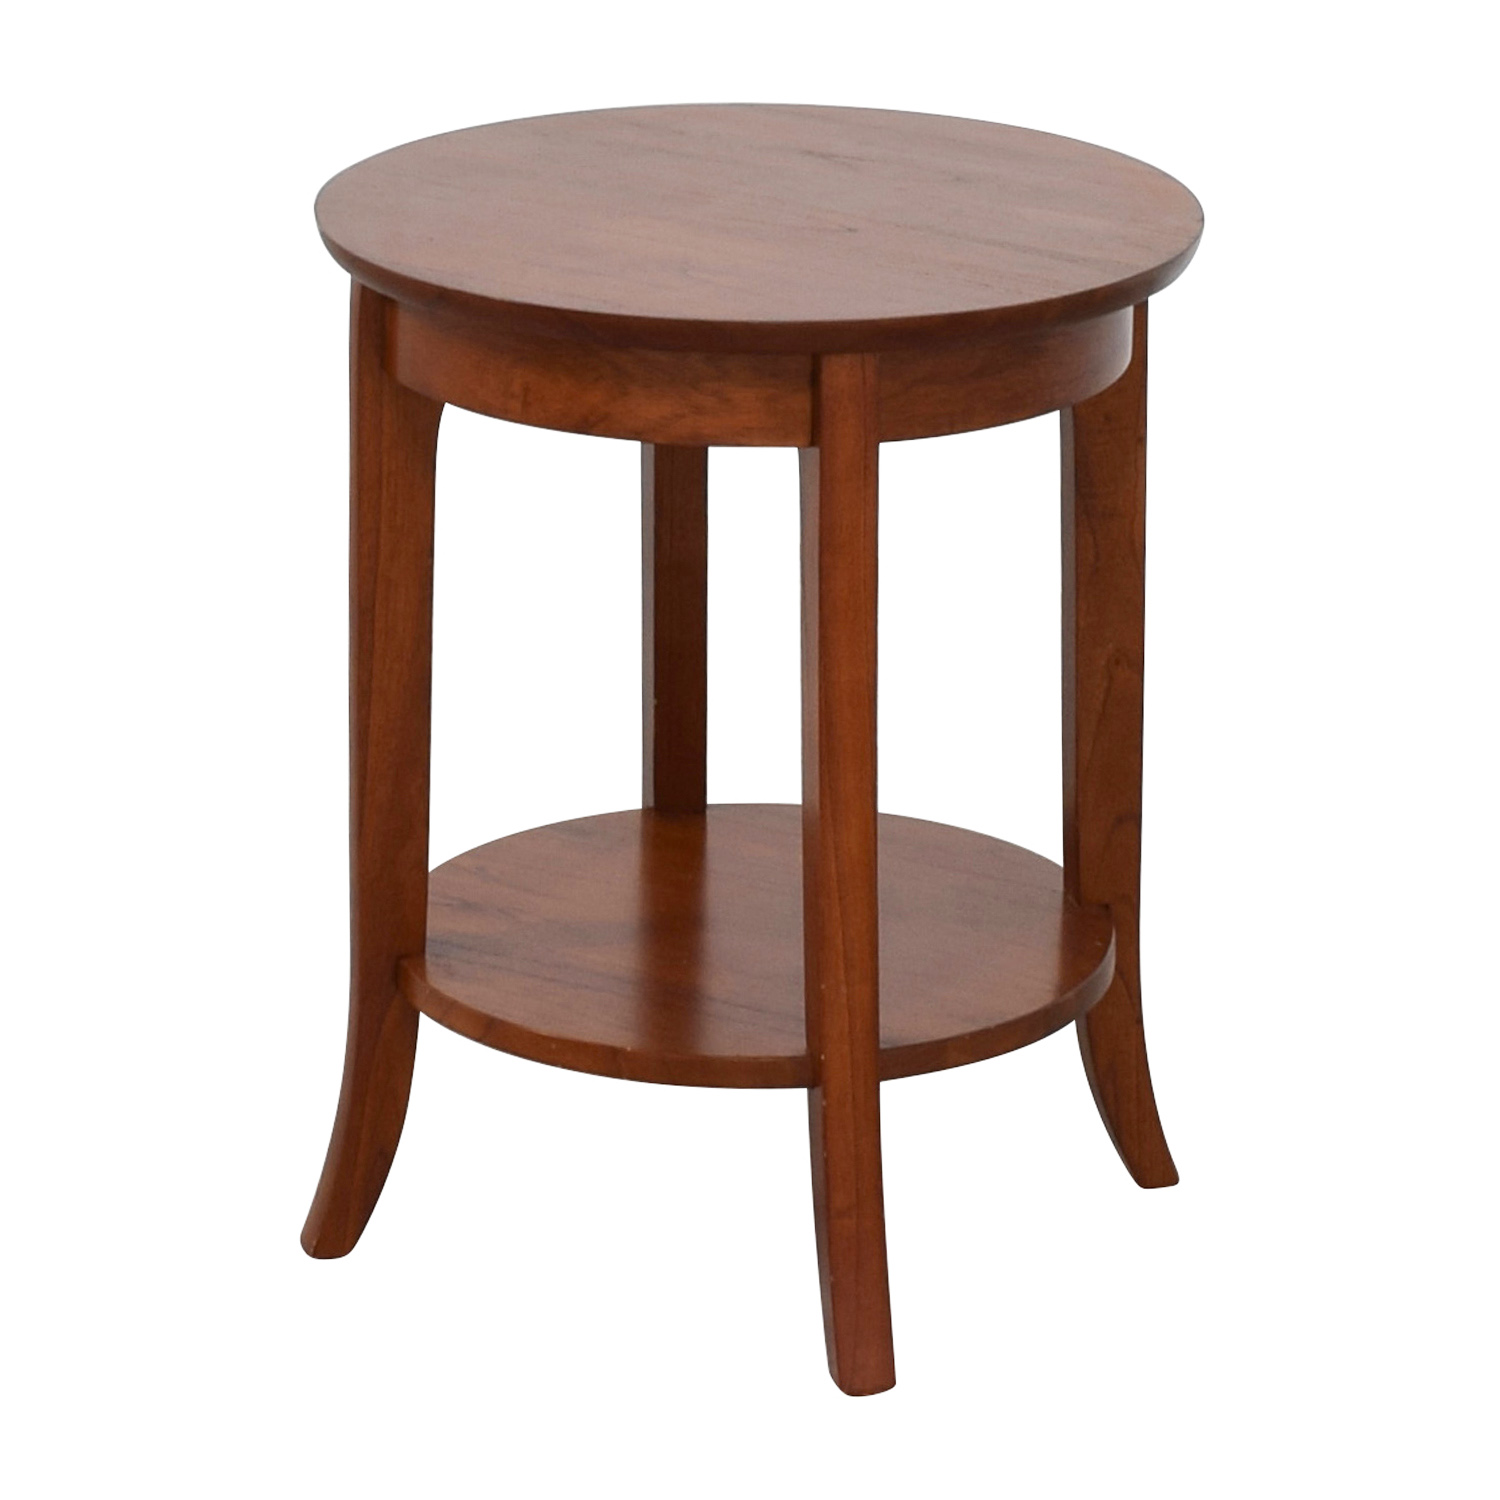 Pottery Barn Pottery Barn Chloe Side Table dimensions